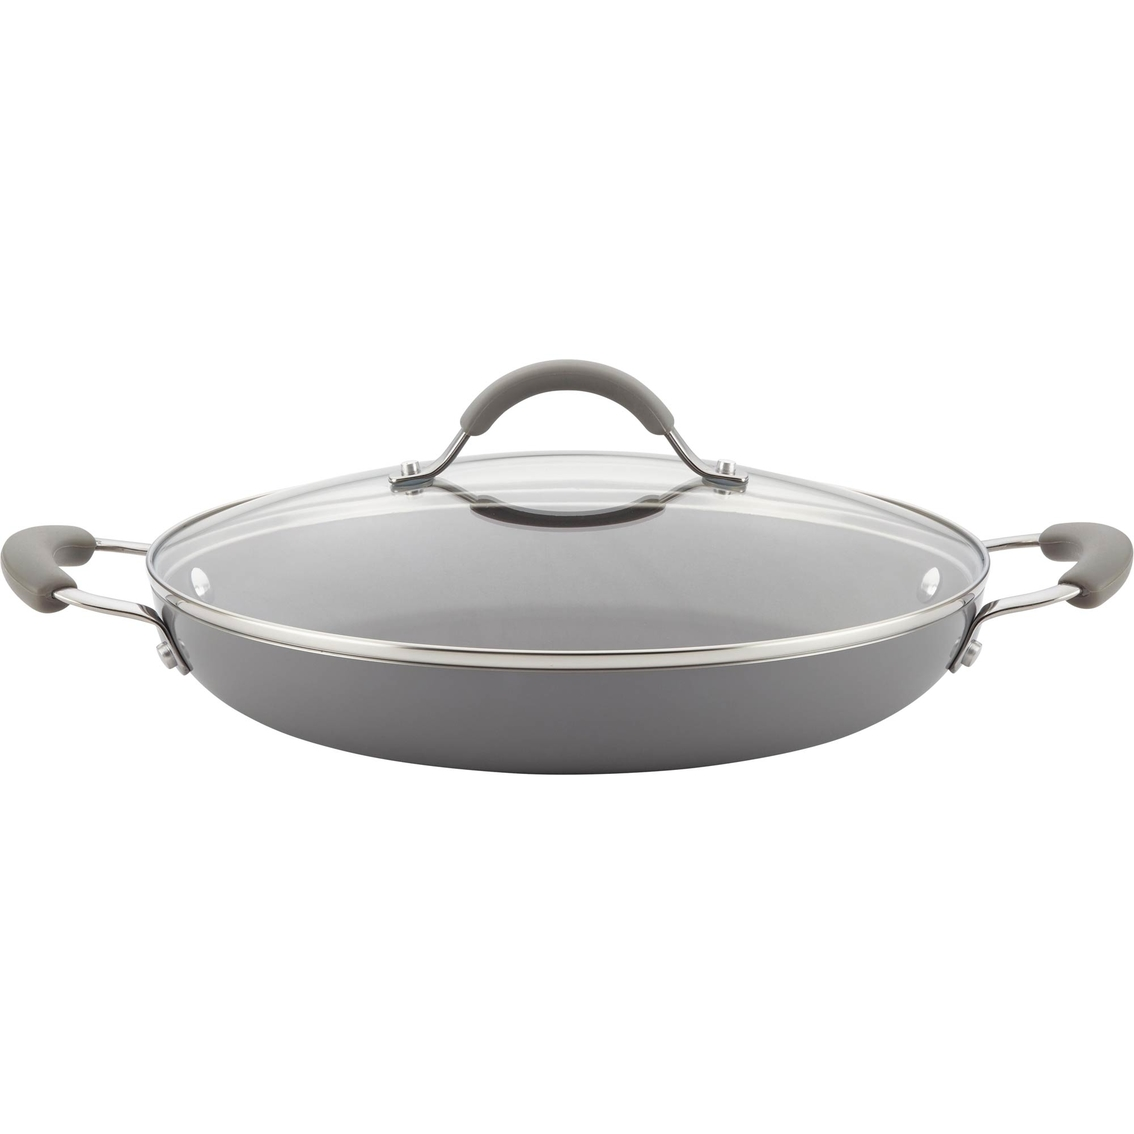 Cucina Wok Rachael Ray Cucina 12 In Covered Pan Fry Pans Skillets Home